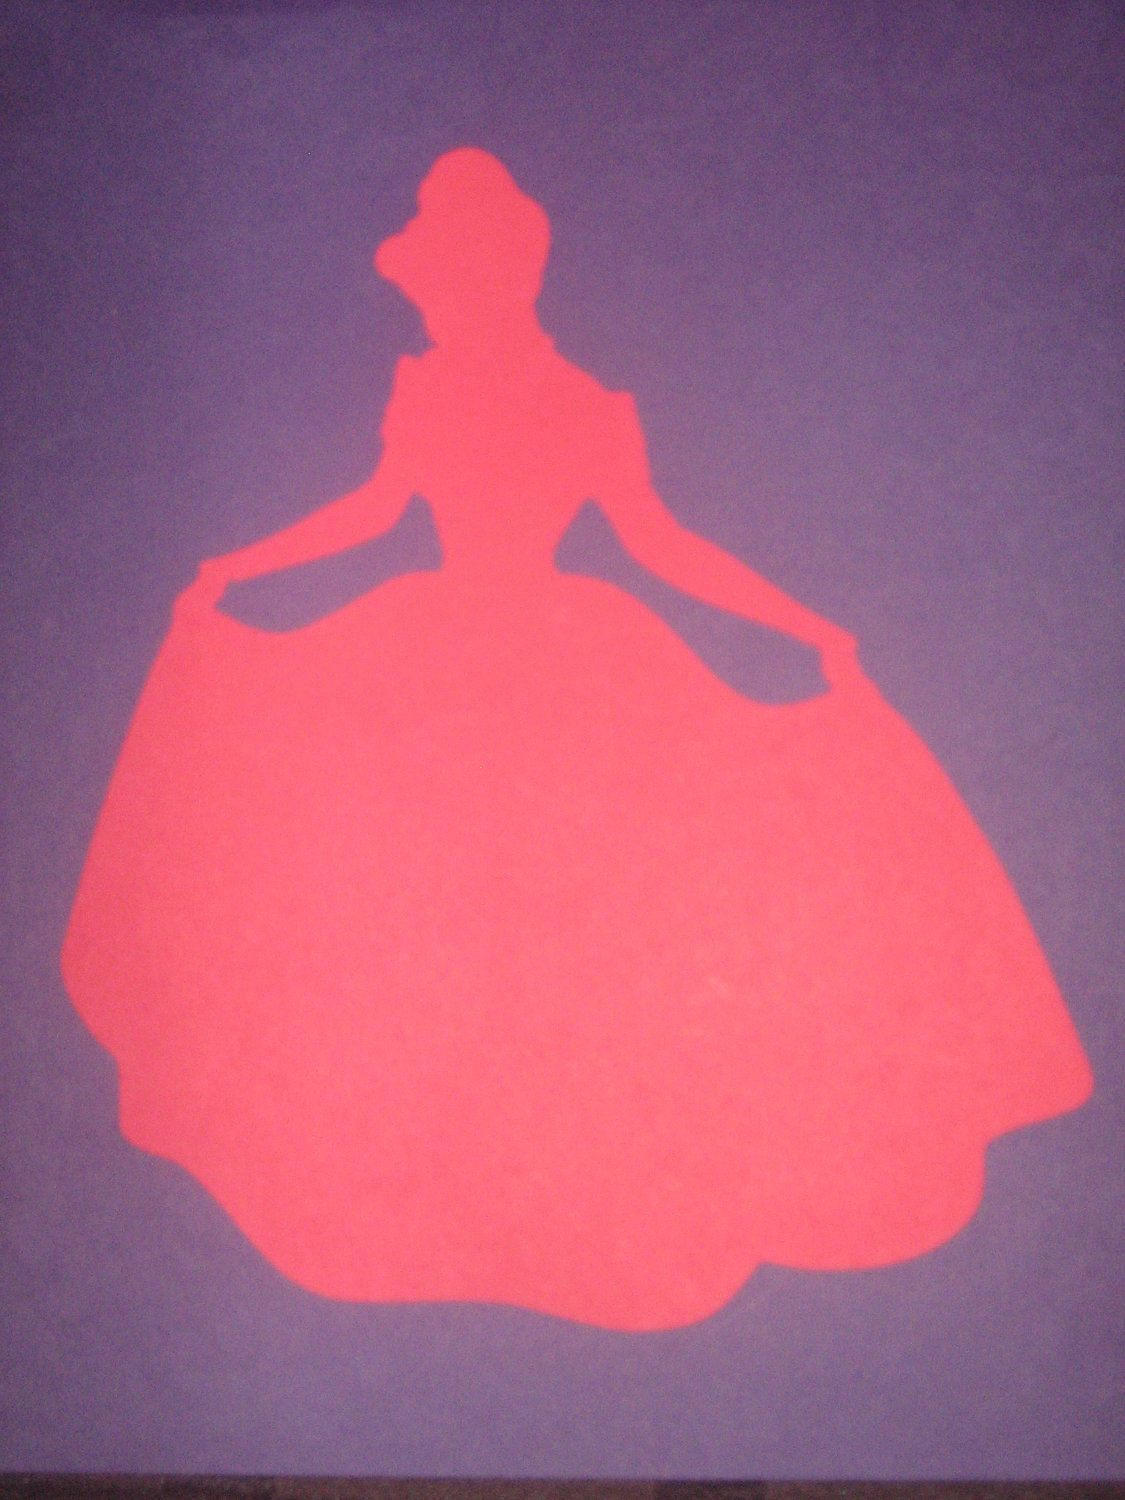 Disney Princess Cinderella Silhouettes for framing, birthday parties ...